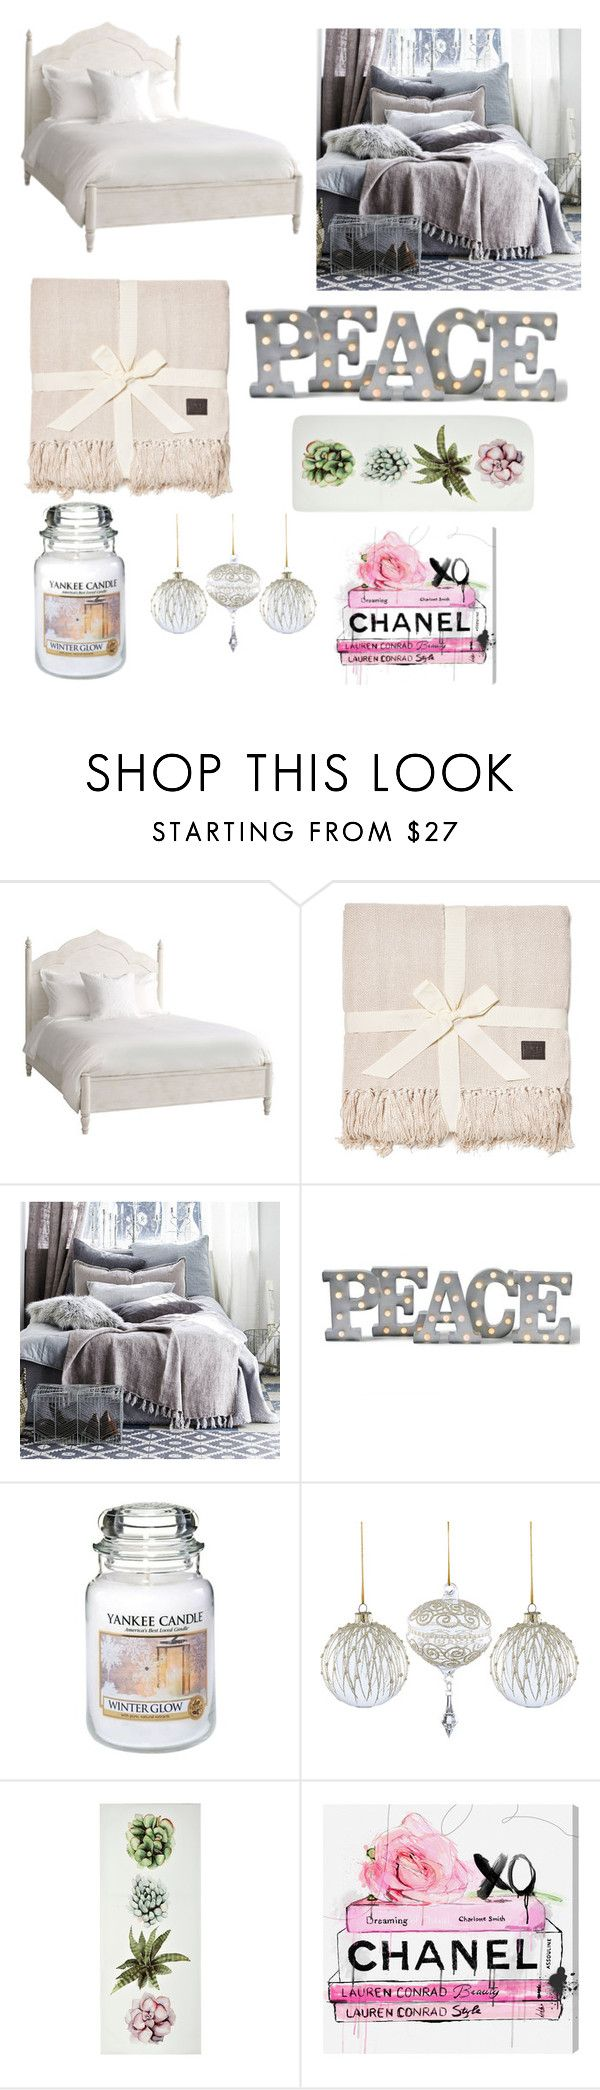 """""""Untitled #17"""" by kylie-cardinali on Polyvore featuring interior, interiors, interior design, home, home decor, interior decorating, Burke Decor, UGG, Grandin Road and Yankee Candle"""